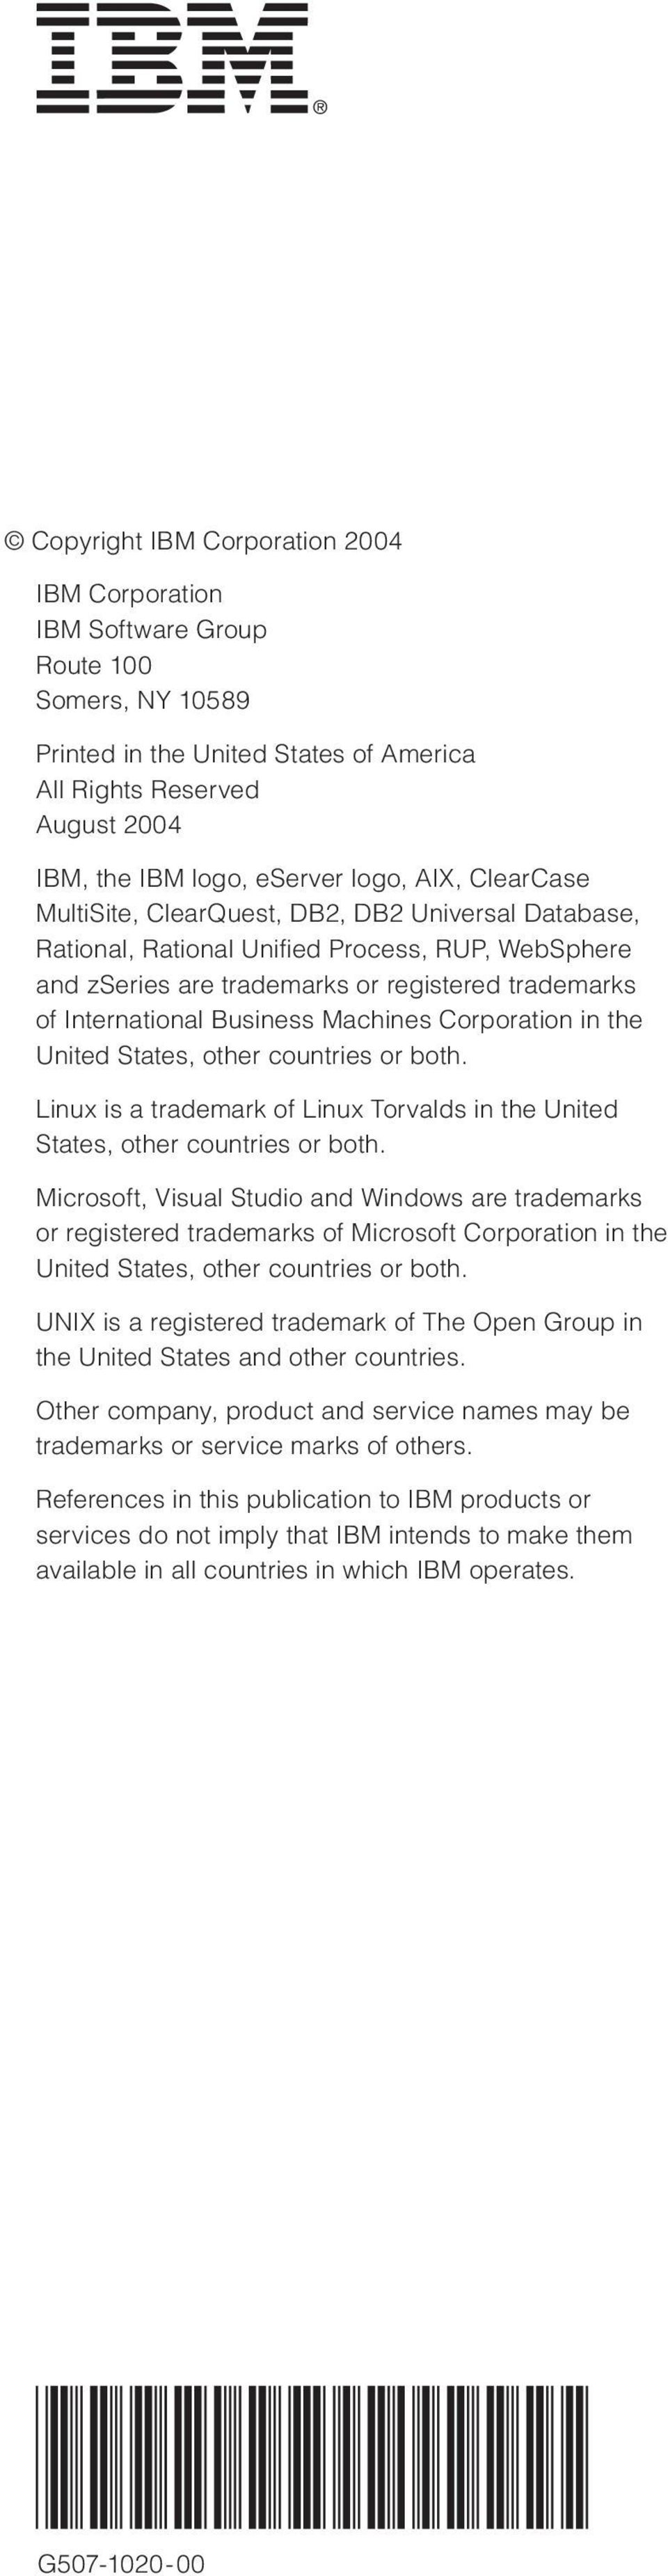 Machines Corporation in the United States, other countries or both. Linux is a trademark of Linux Torvalds in the United States, other countries or both.